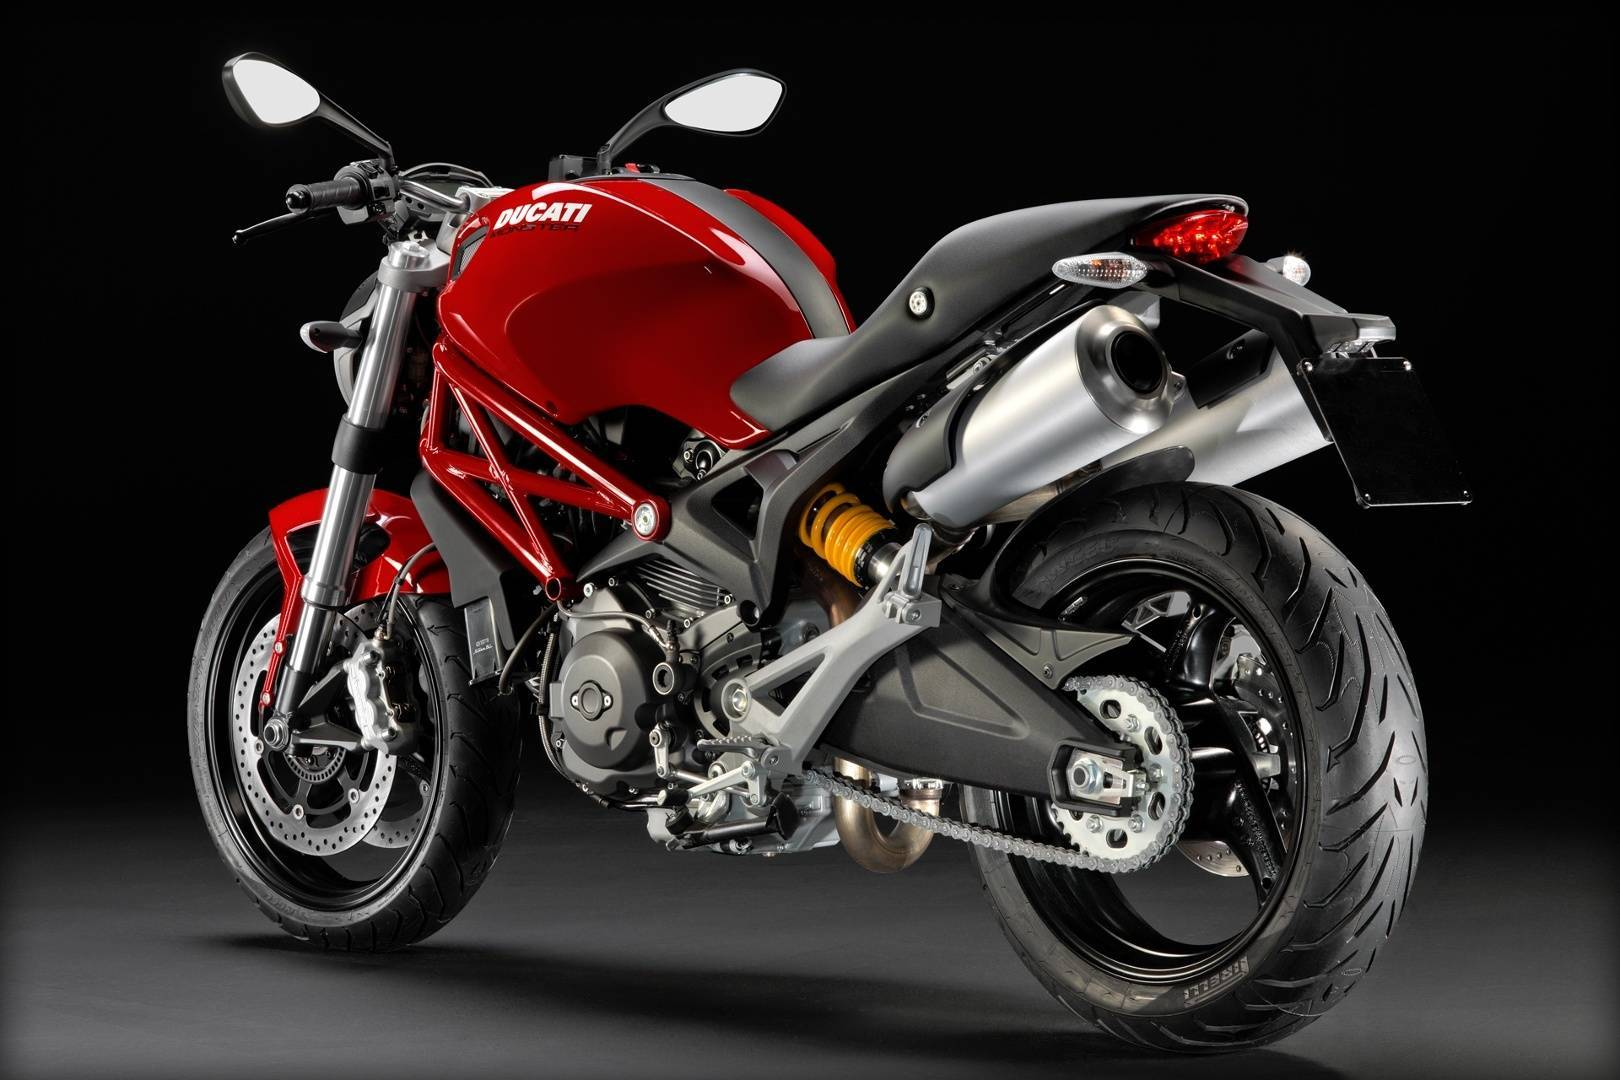 ducati monster 795 price mileage review ducati bikes. Black Bedroom Furniture Sets. Home Design Ideas